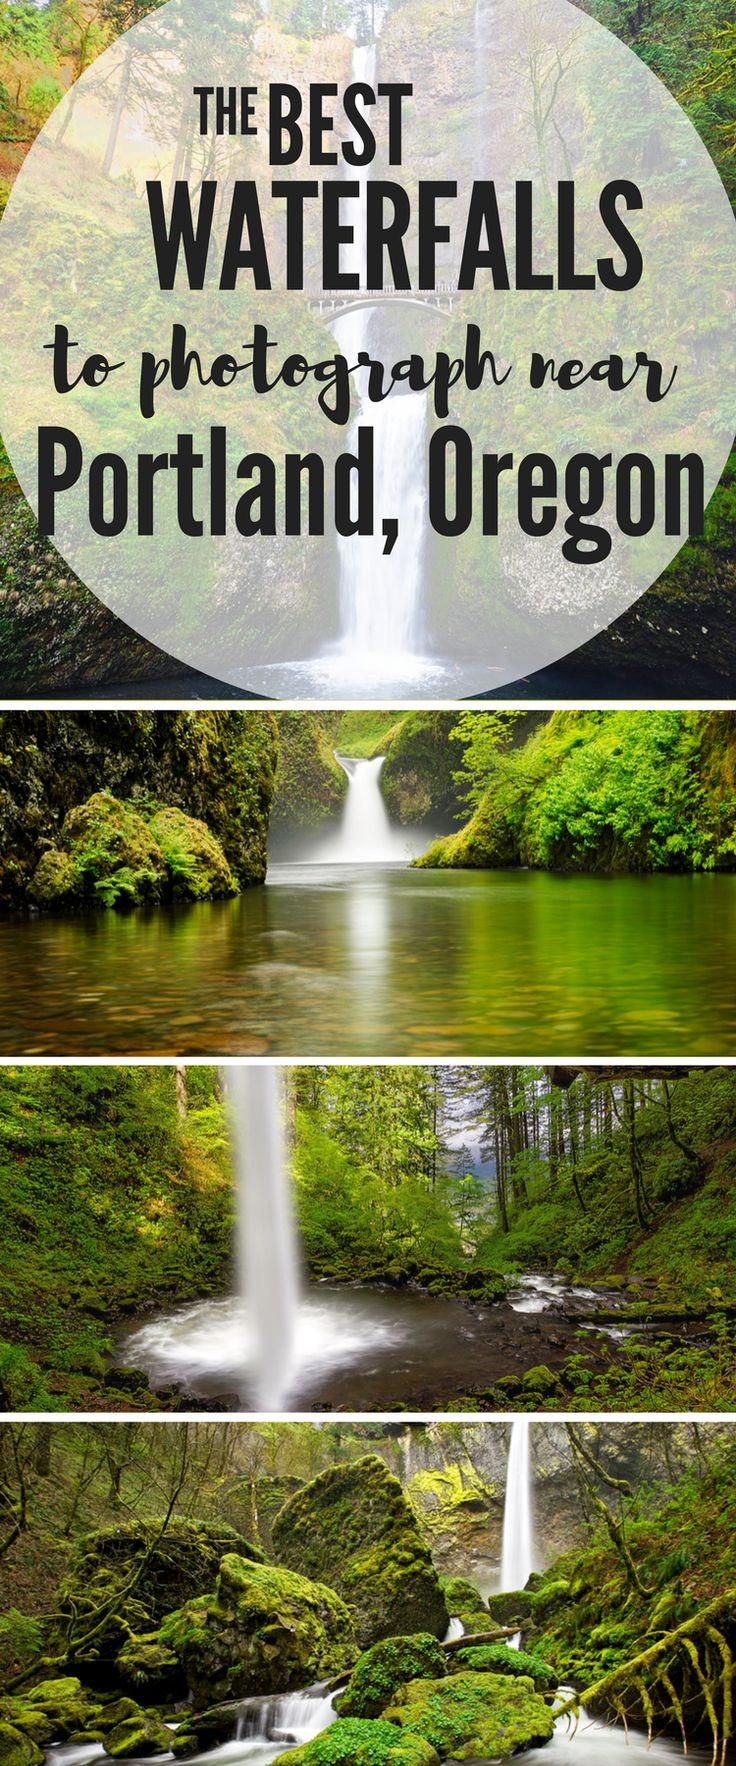 The most amazing waterfalls you must see that are only a short drive for Portland, Oregon.